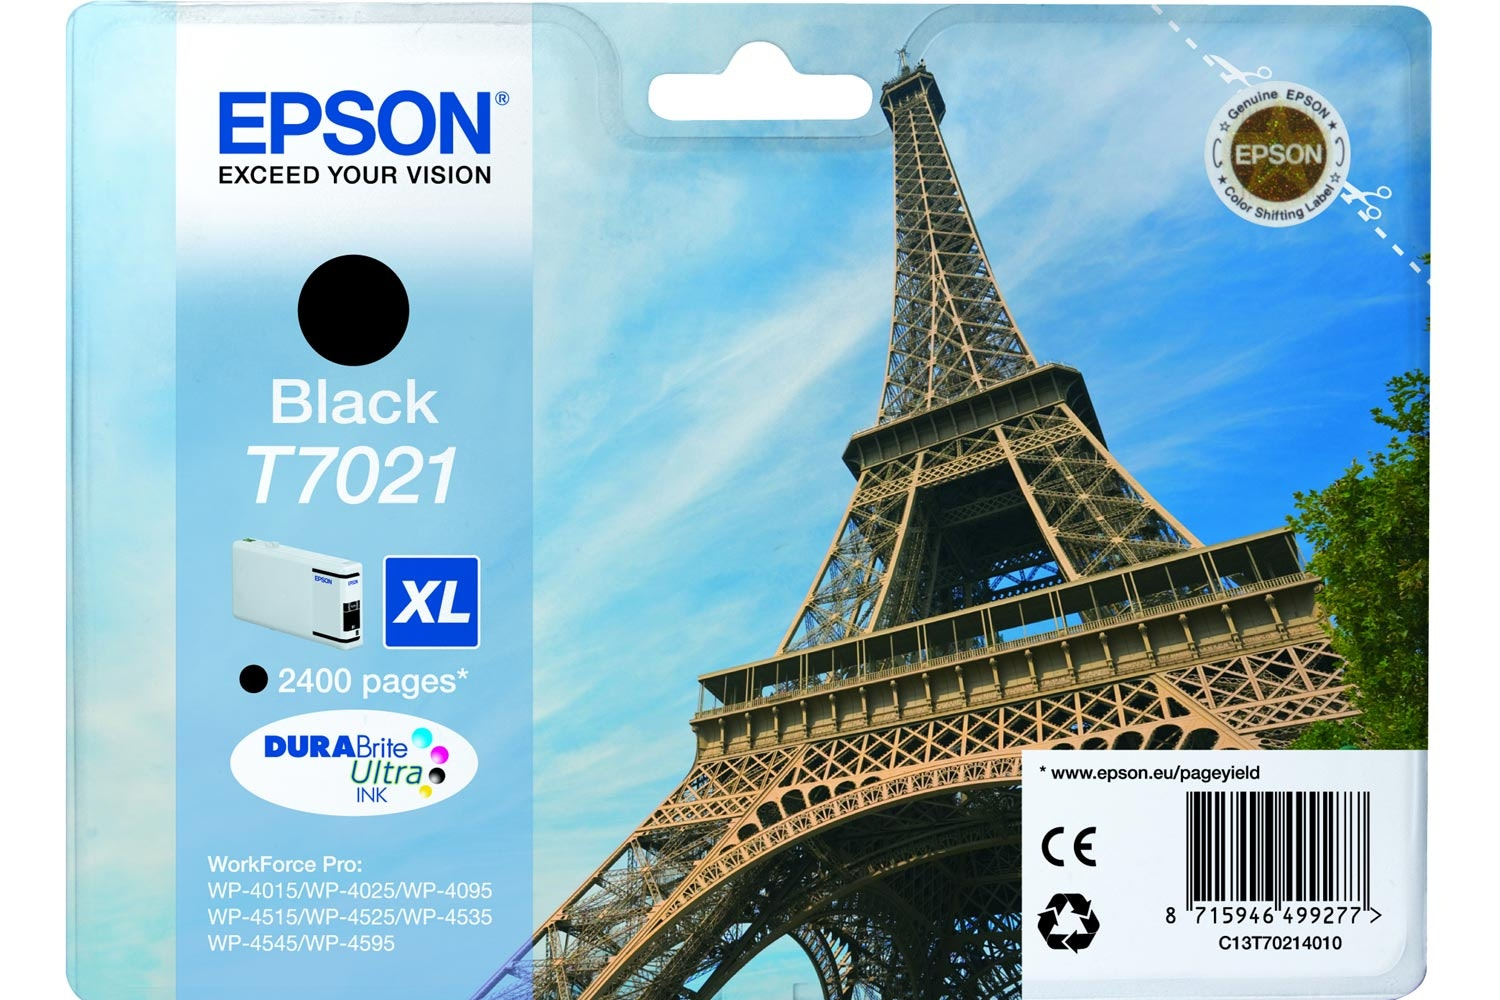 Epson XL Eiffel Tower Ink Black